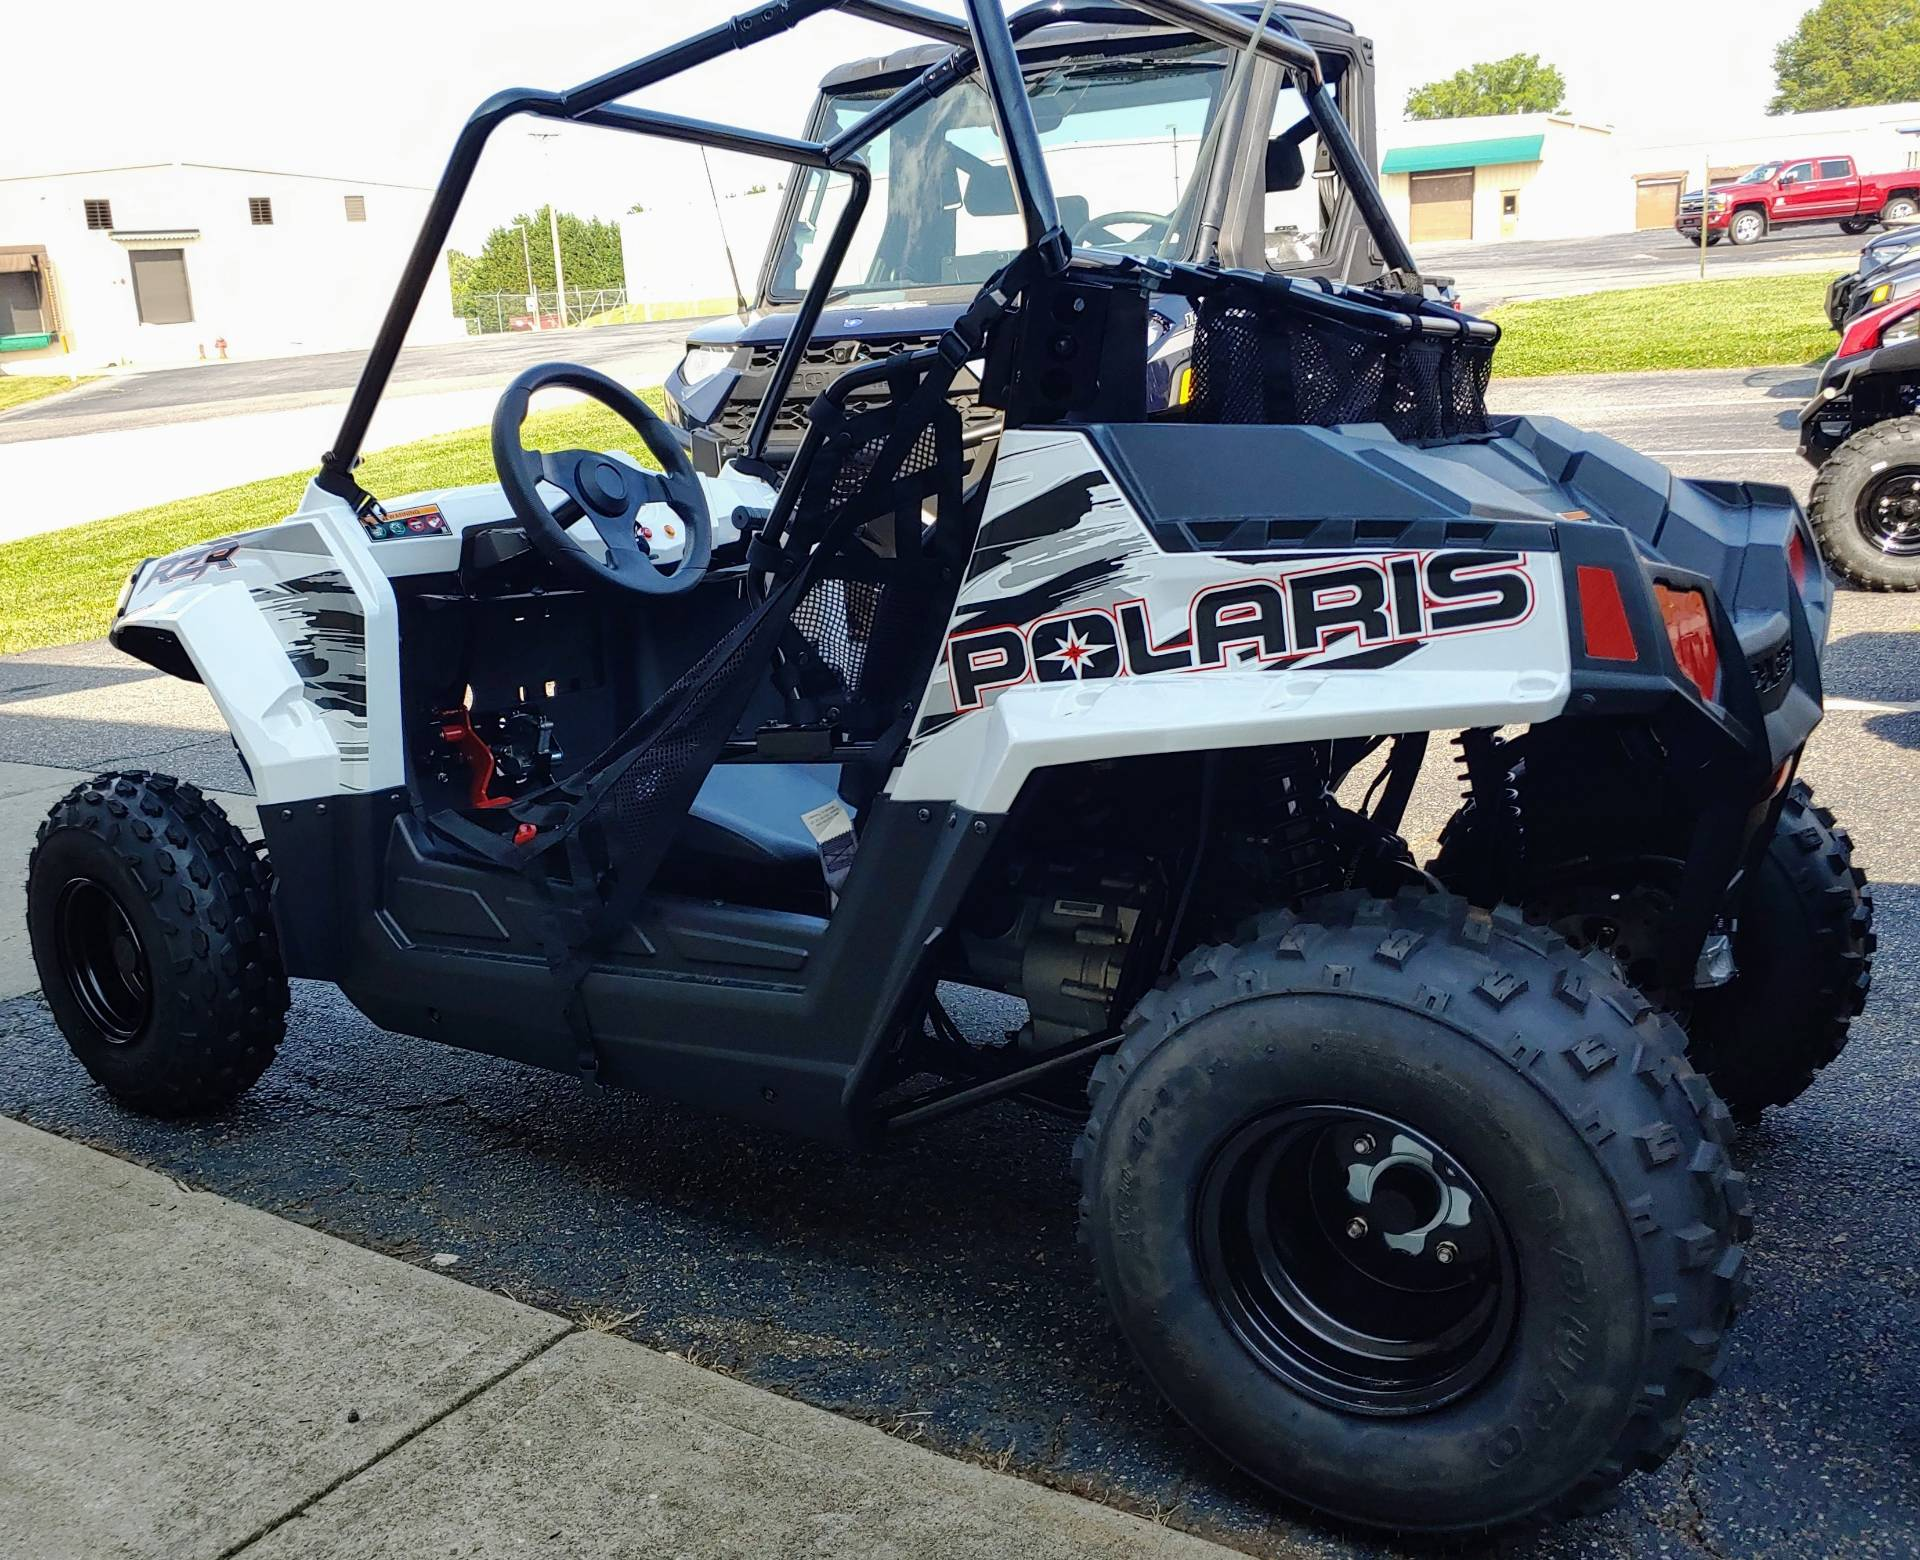 2019 Polaris RZR 170 EFI in Statesville, North Carolina - Photo 2